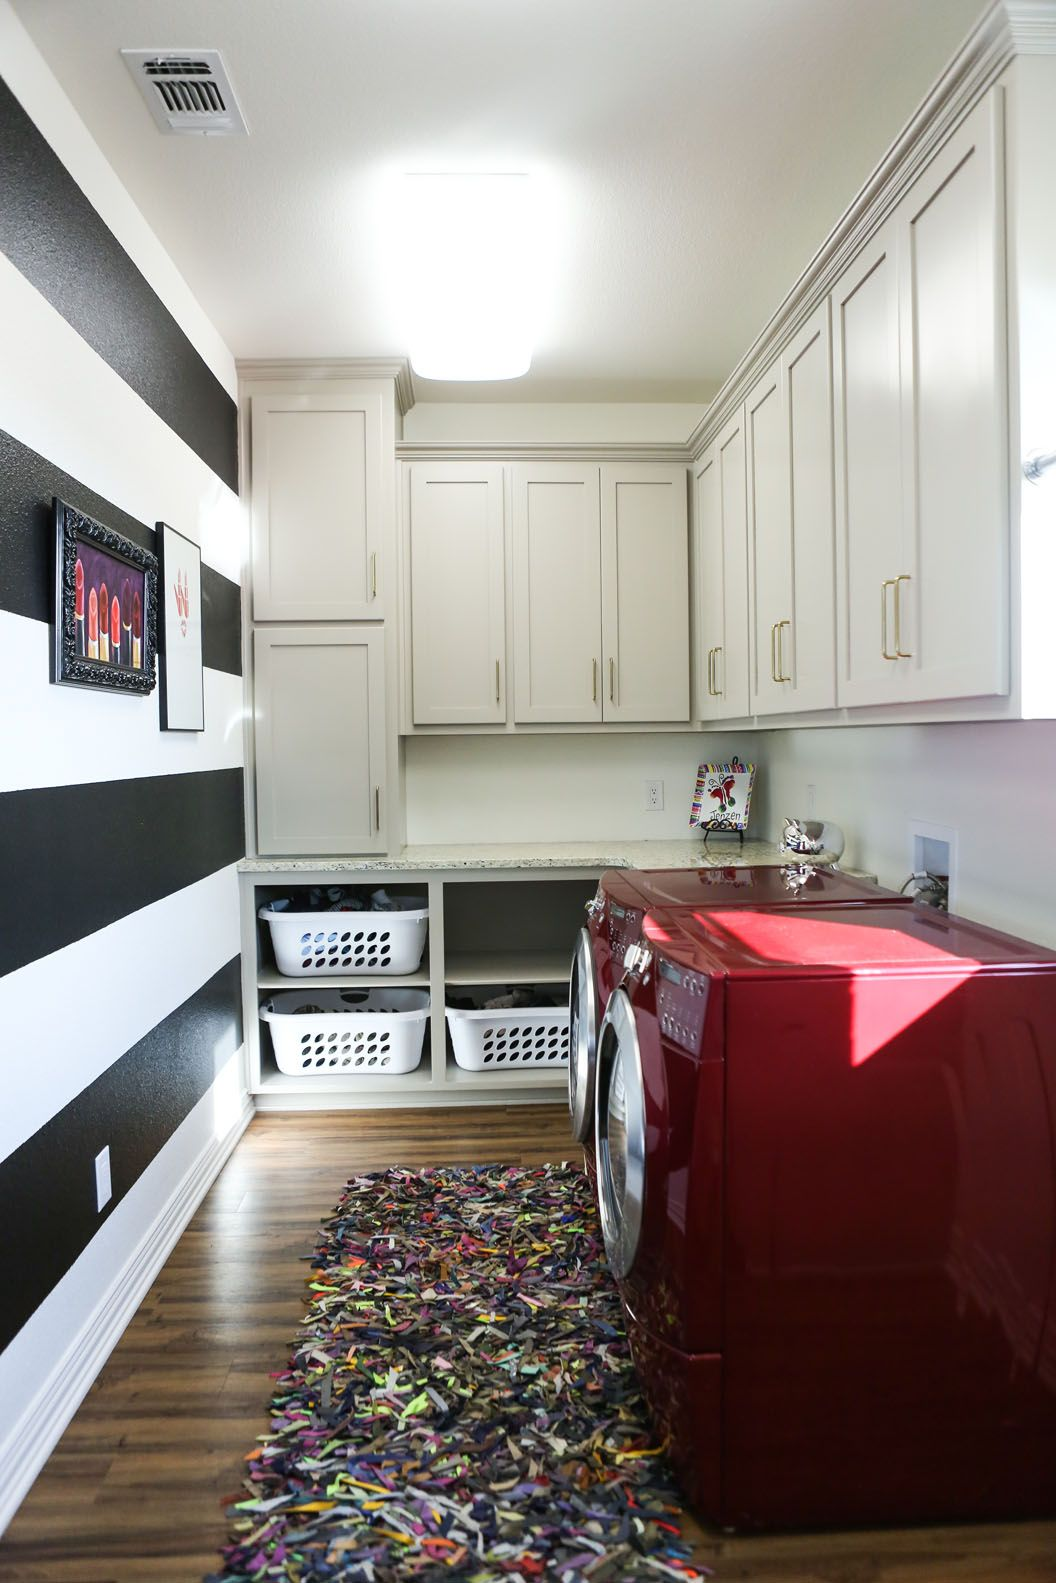 Black Kitchen Cabinets Gold Hardware Laundry Room With Black And White Stripes Wall, Red Washer